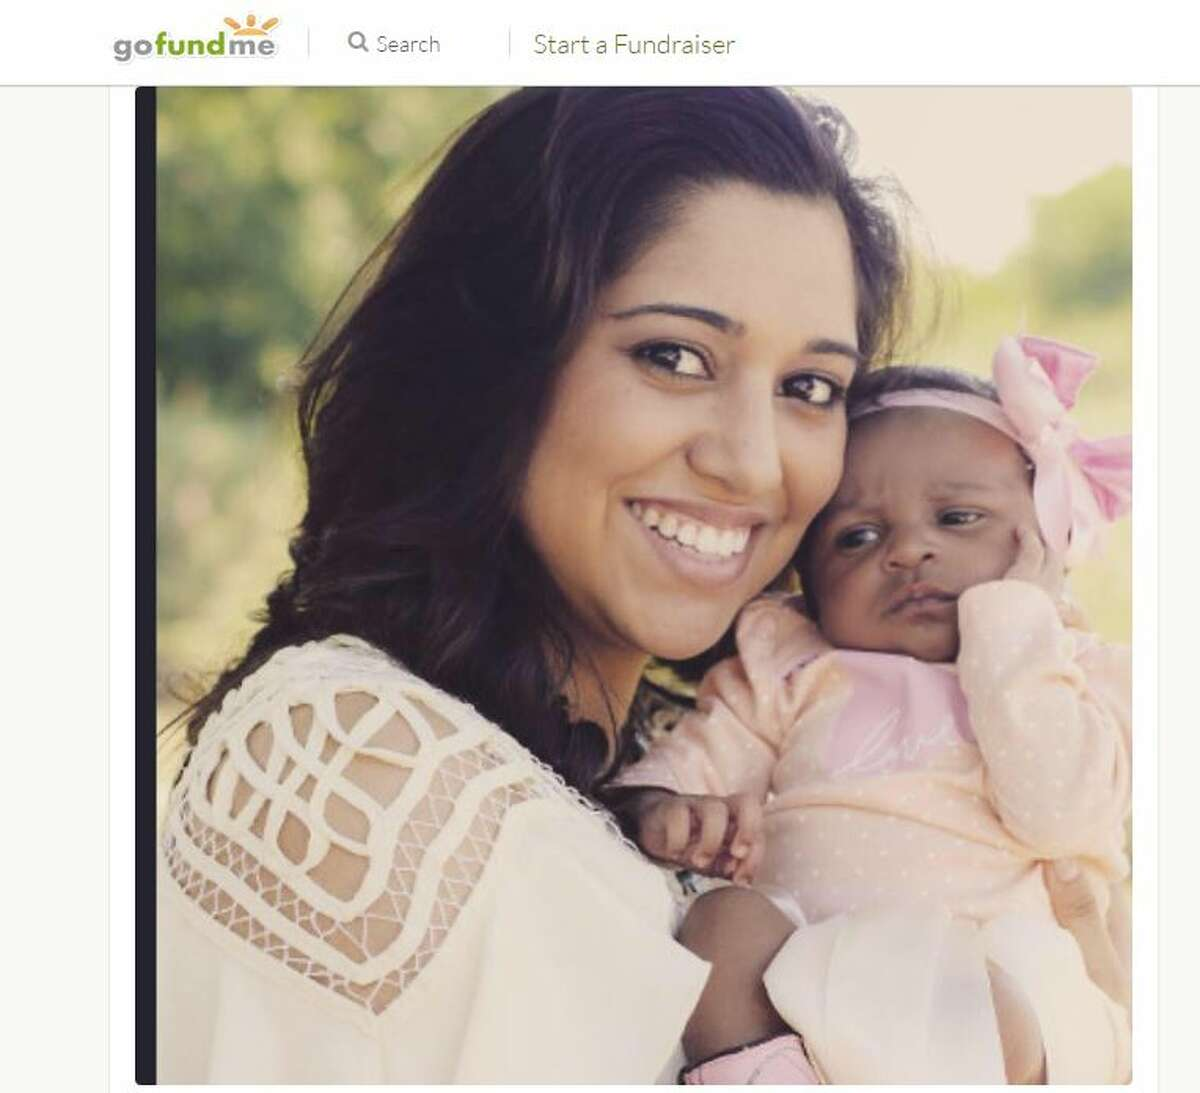 Karlyn Ramirez, 24, was found dead Aug. 24, 2015 with her then five-month-old daughter by her side. An Army soldier stationed in San Antonio and his girlfriend were arrested Thursday Oct. 6, 2016 in connection with the killing.